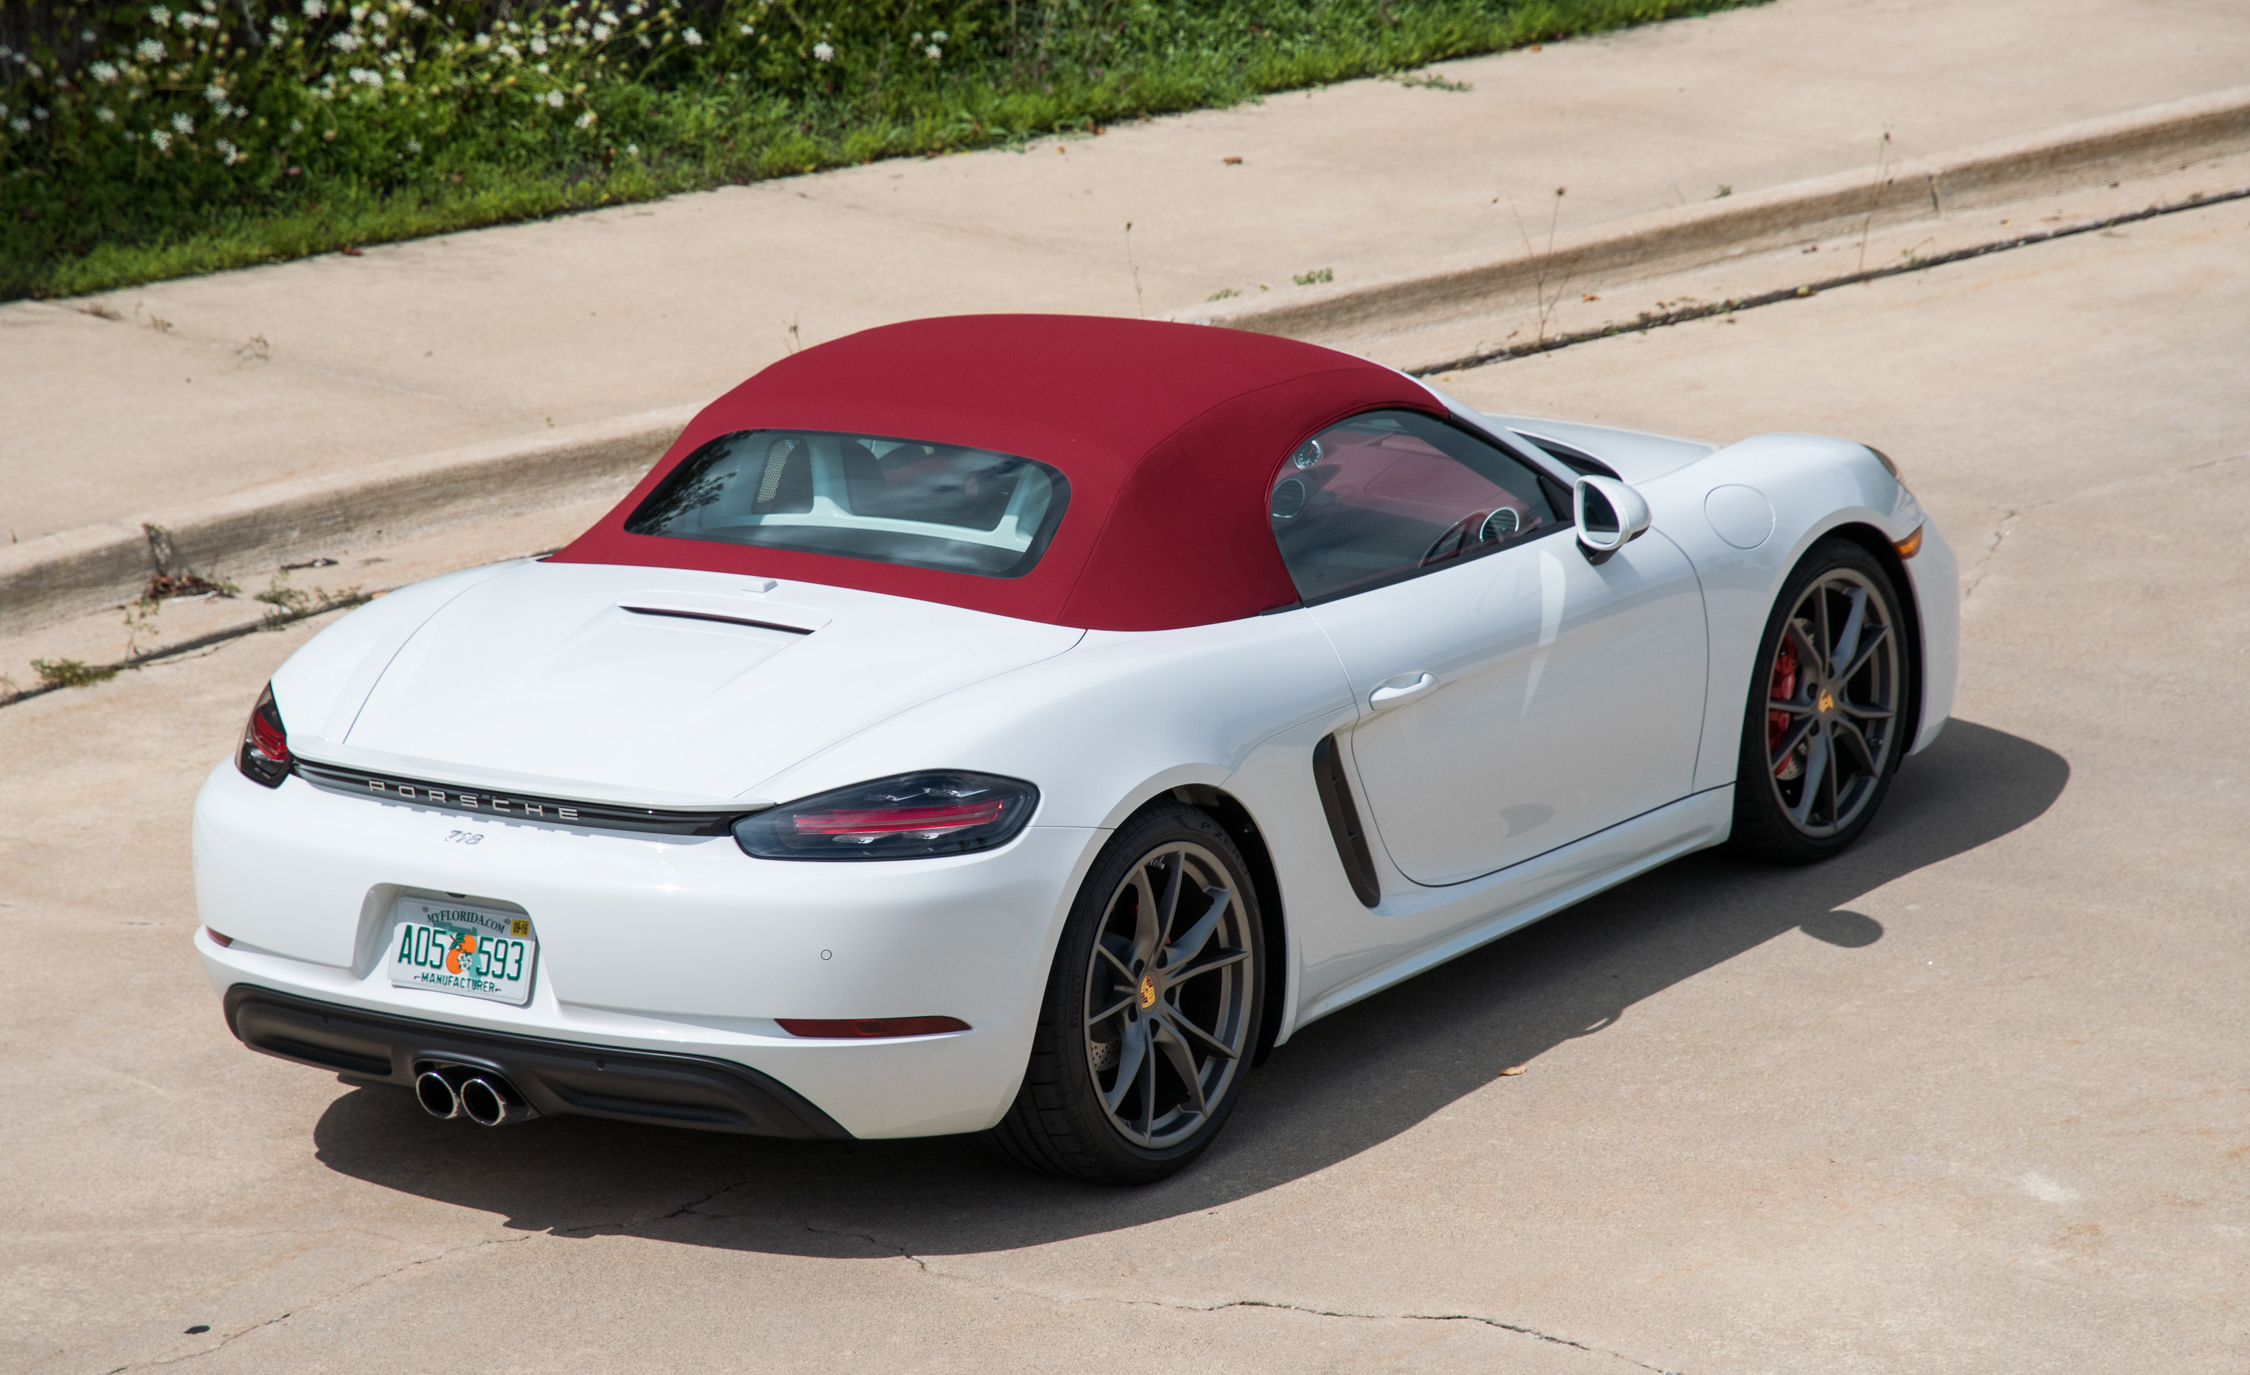 2017 Porsche 718 Boxster (View 61 of 71)